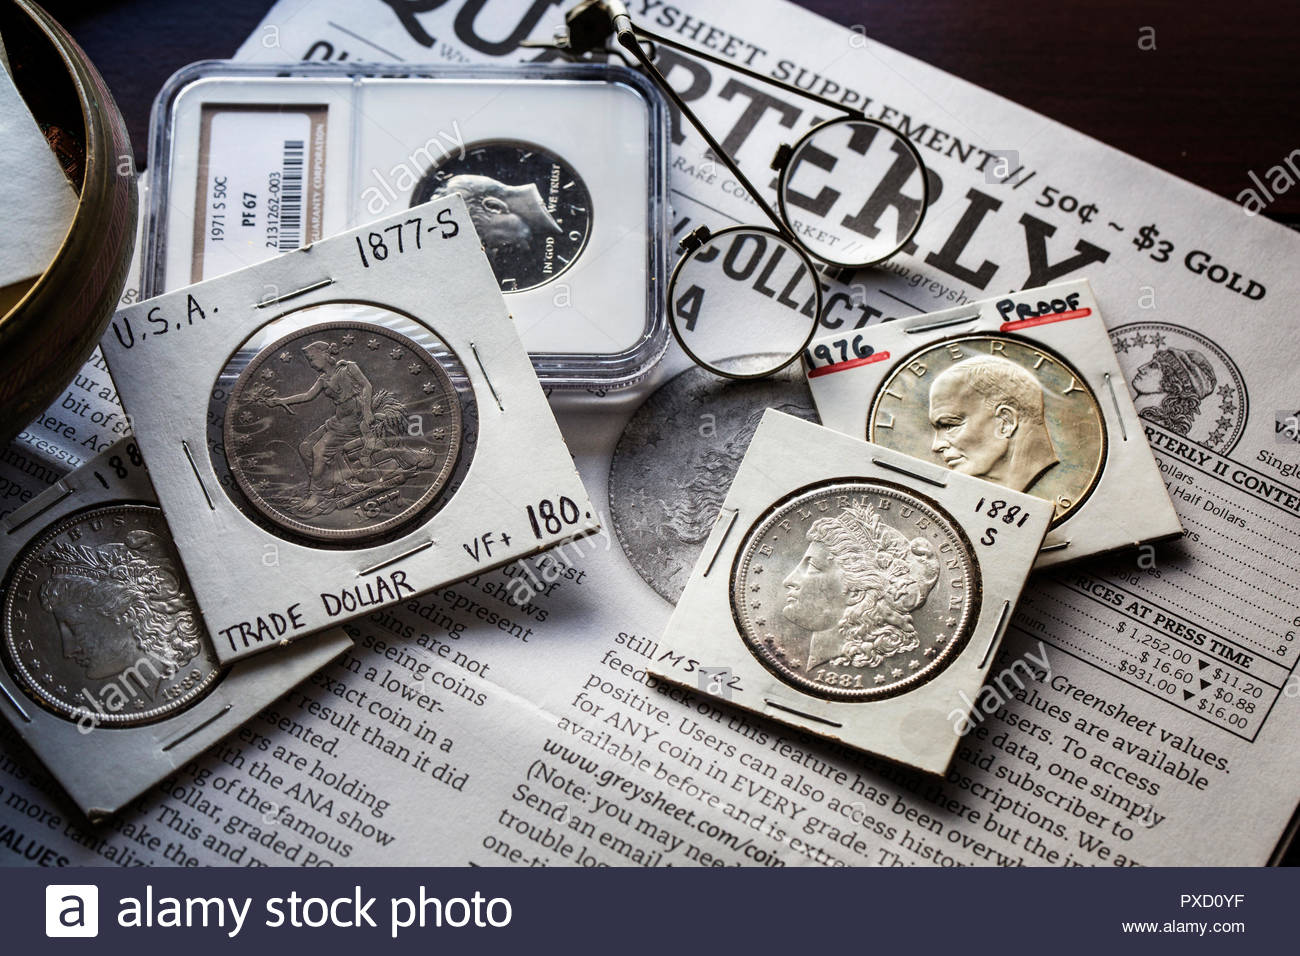 Coin Collecting for Fun and Profit - Torrington